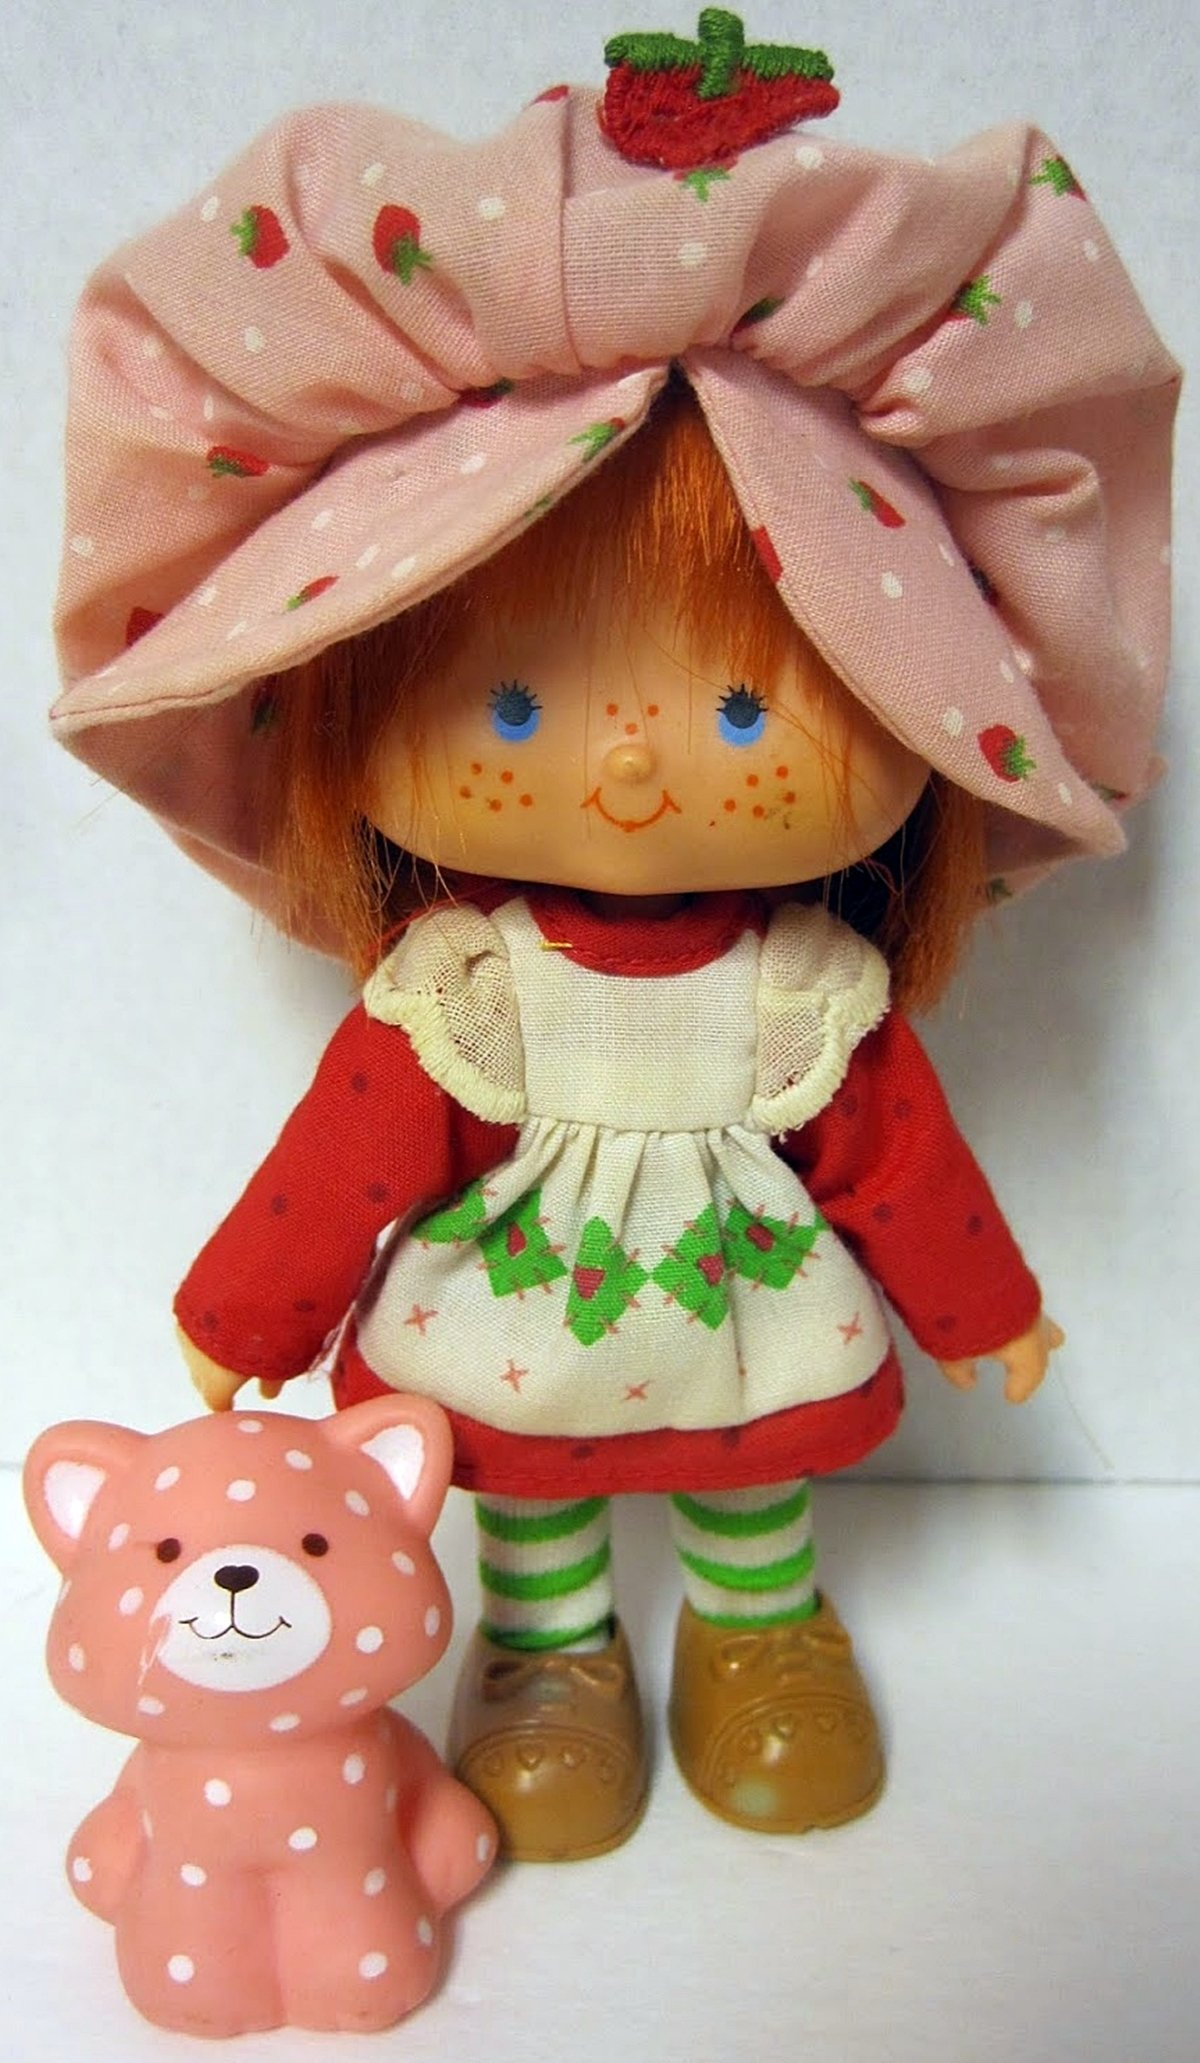 A Strawberry Shortcake doll from the 80s